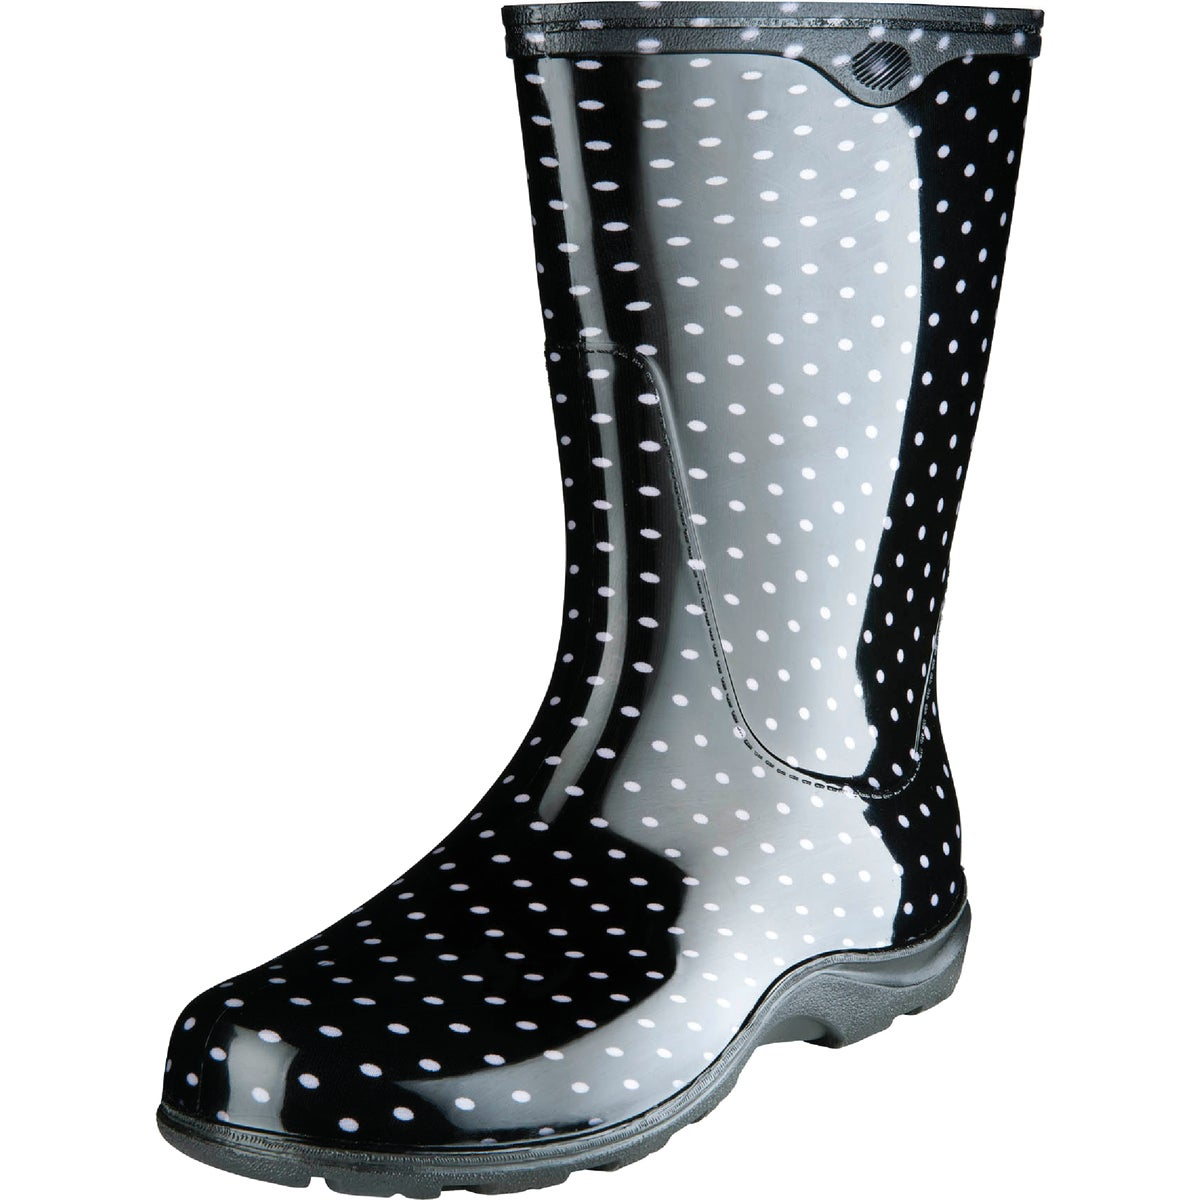 SZ 10 MID-BLACK TALLBOOT - 5002BK10 by Principle Plastics